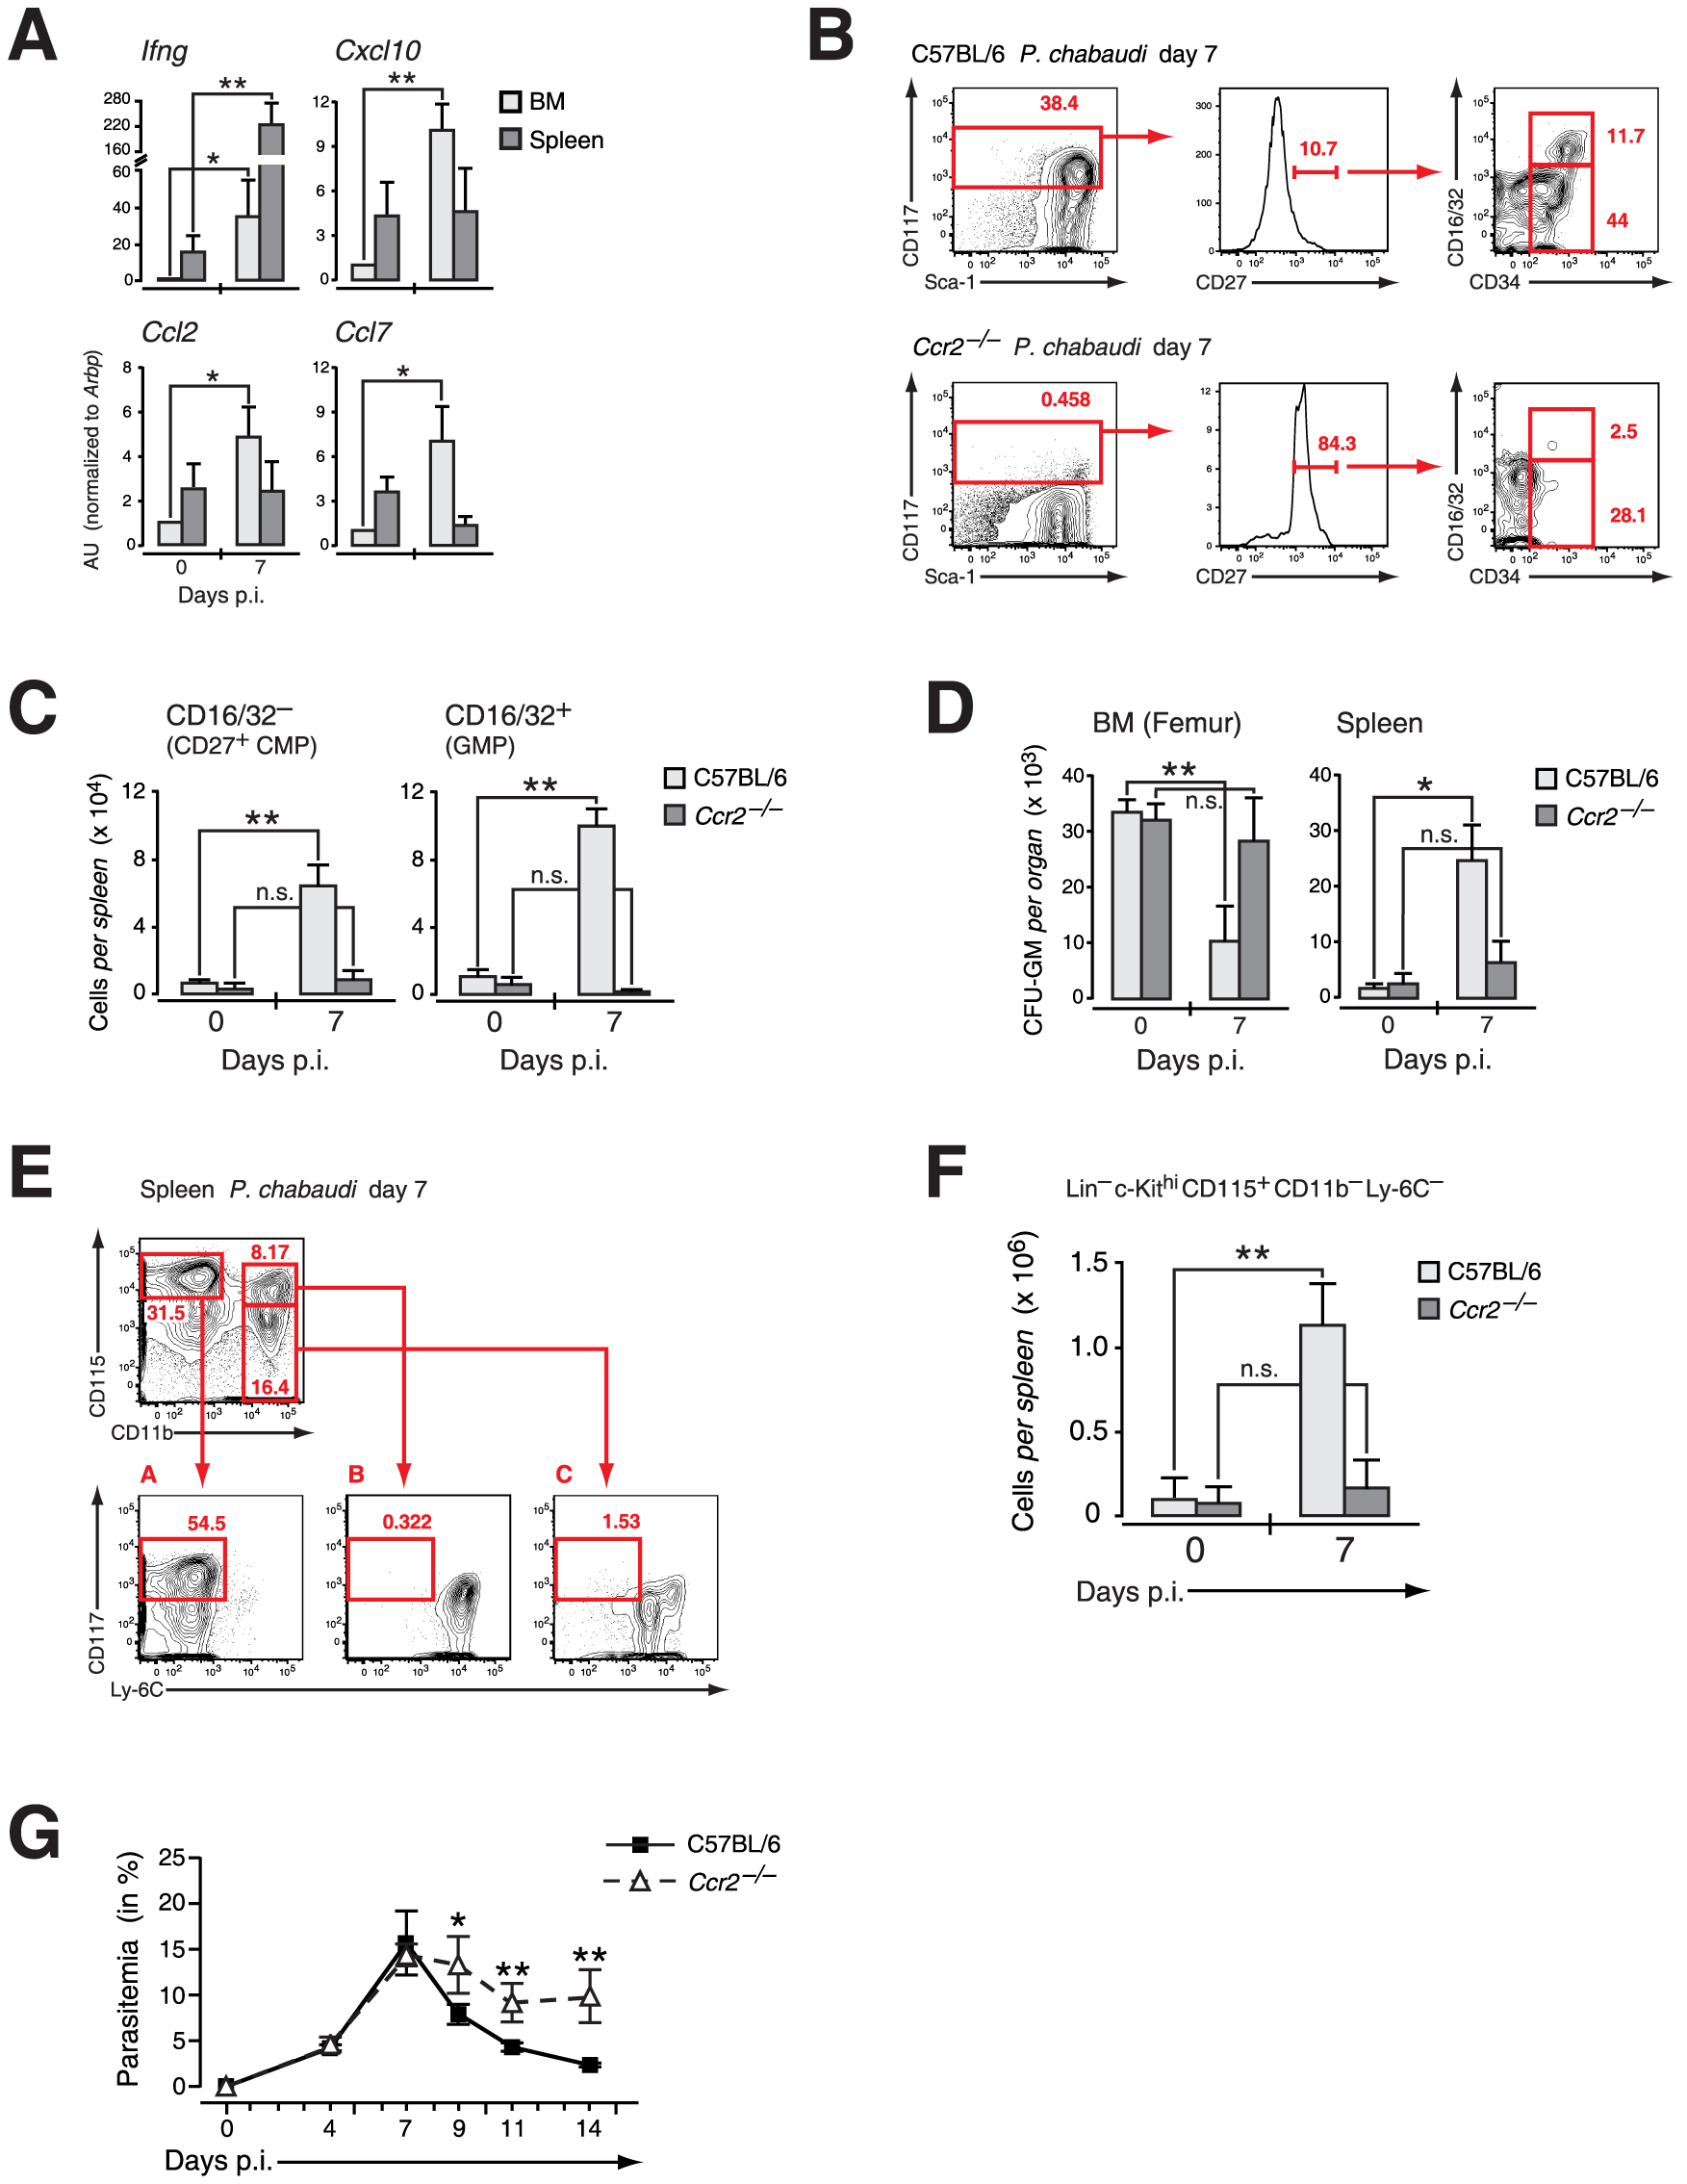 Extramedullary myelopoiesis in malaria is established by mobilizing CCR2<sup>+</sup> myeloid-restricted BM progenitors.